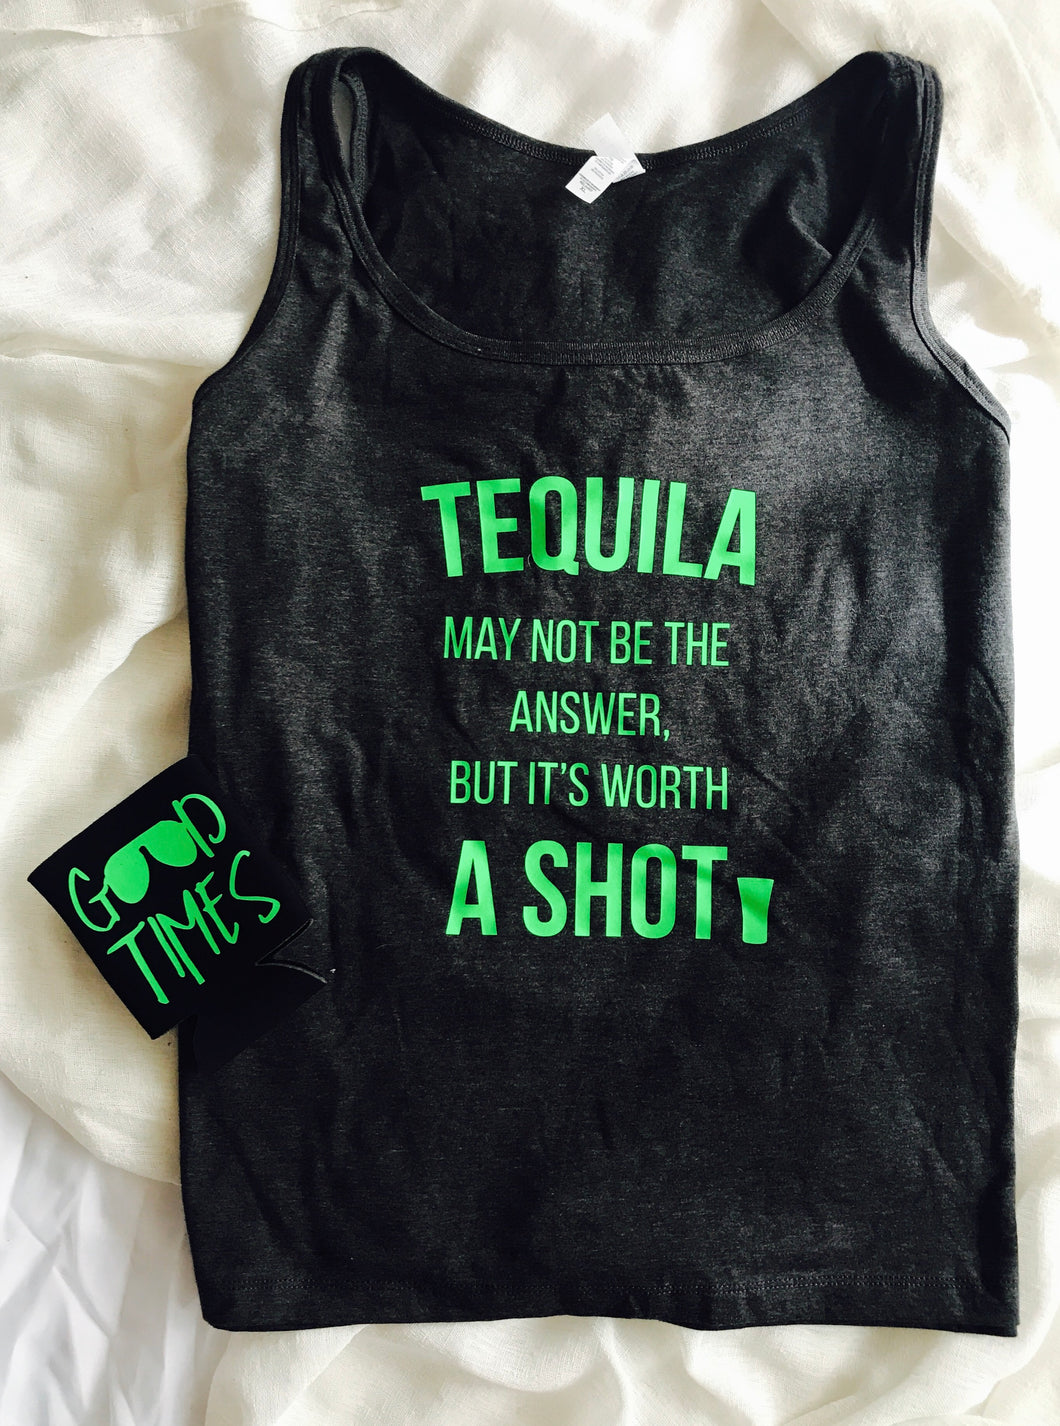 Tequila may not be the answer but it's worth a shot funny party shirt. Bella canvas tank. - Mavictoria Designs Hot Press Express